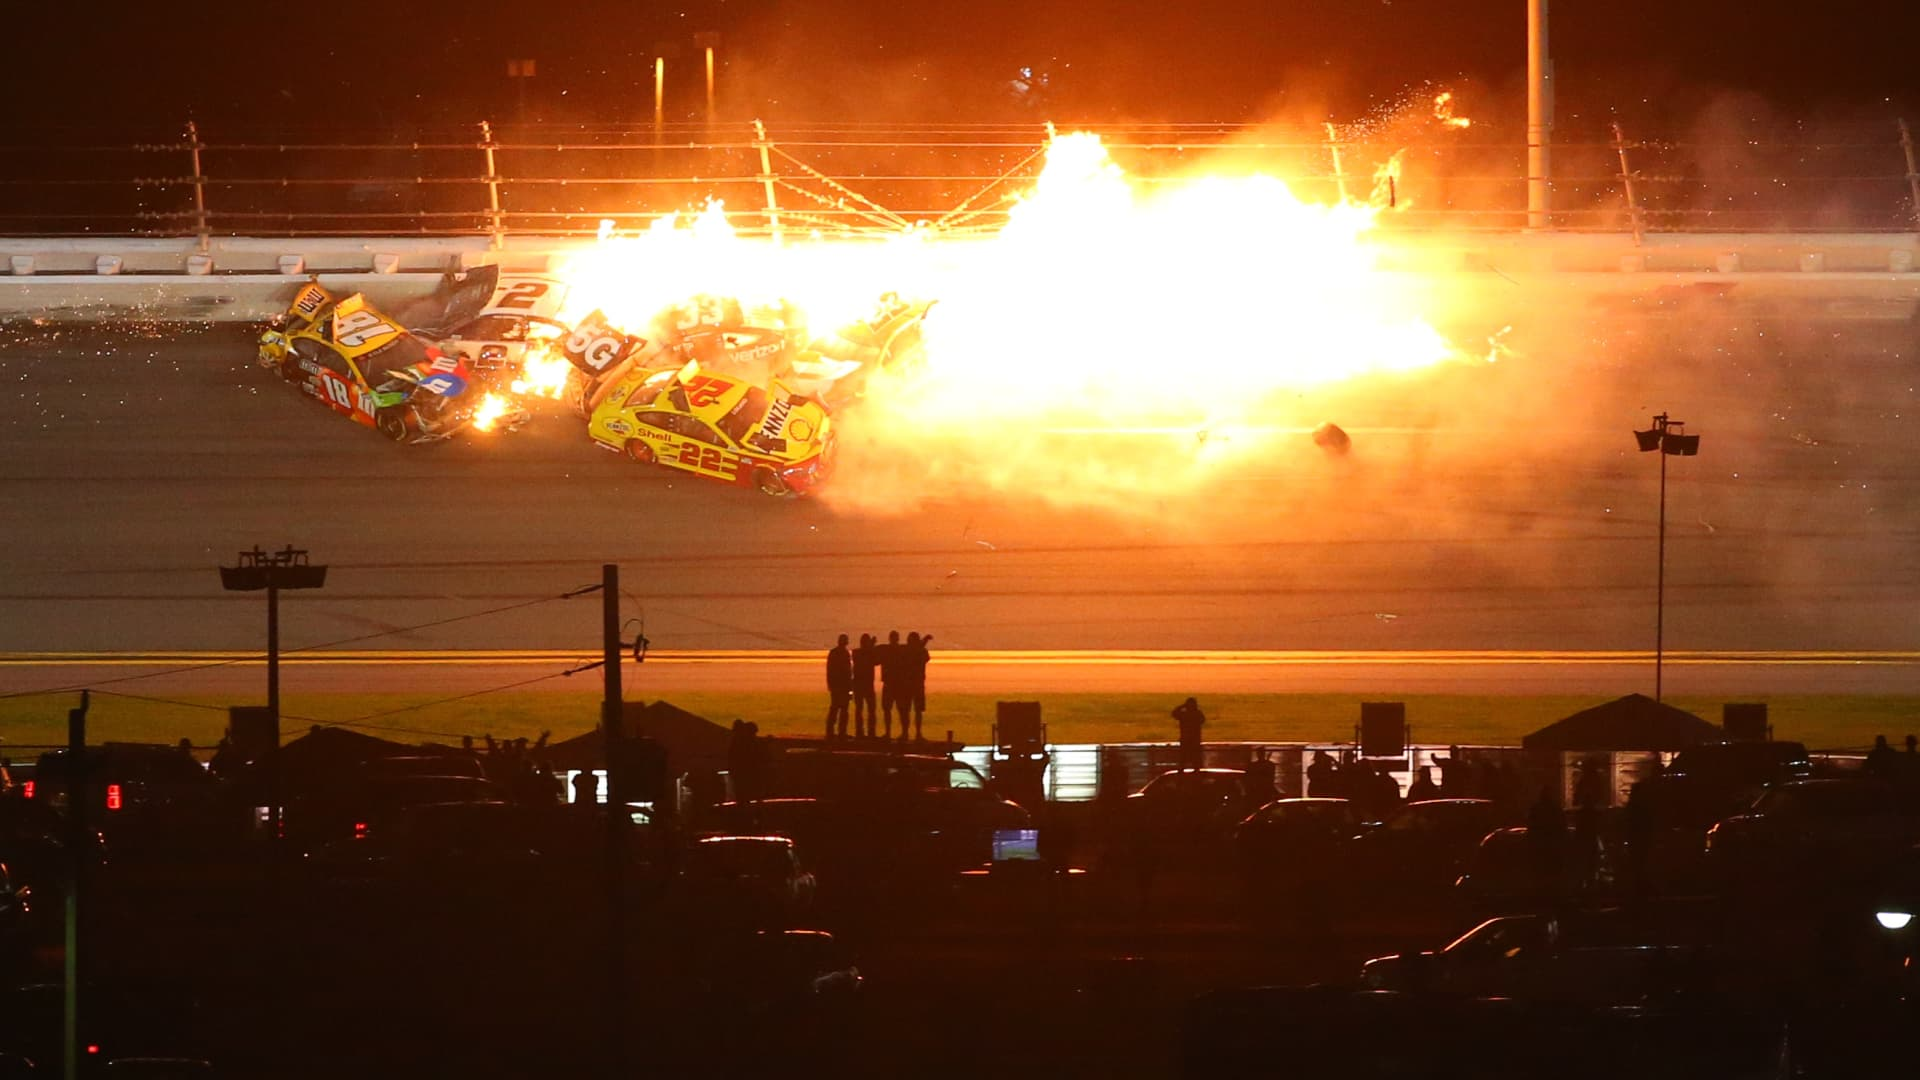 Flames erupt during a last-lap crash consumes several cars during the Daytona 500 on February 14, 2021 at Daytona International Speedway in Daytona Beach. Fl.